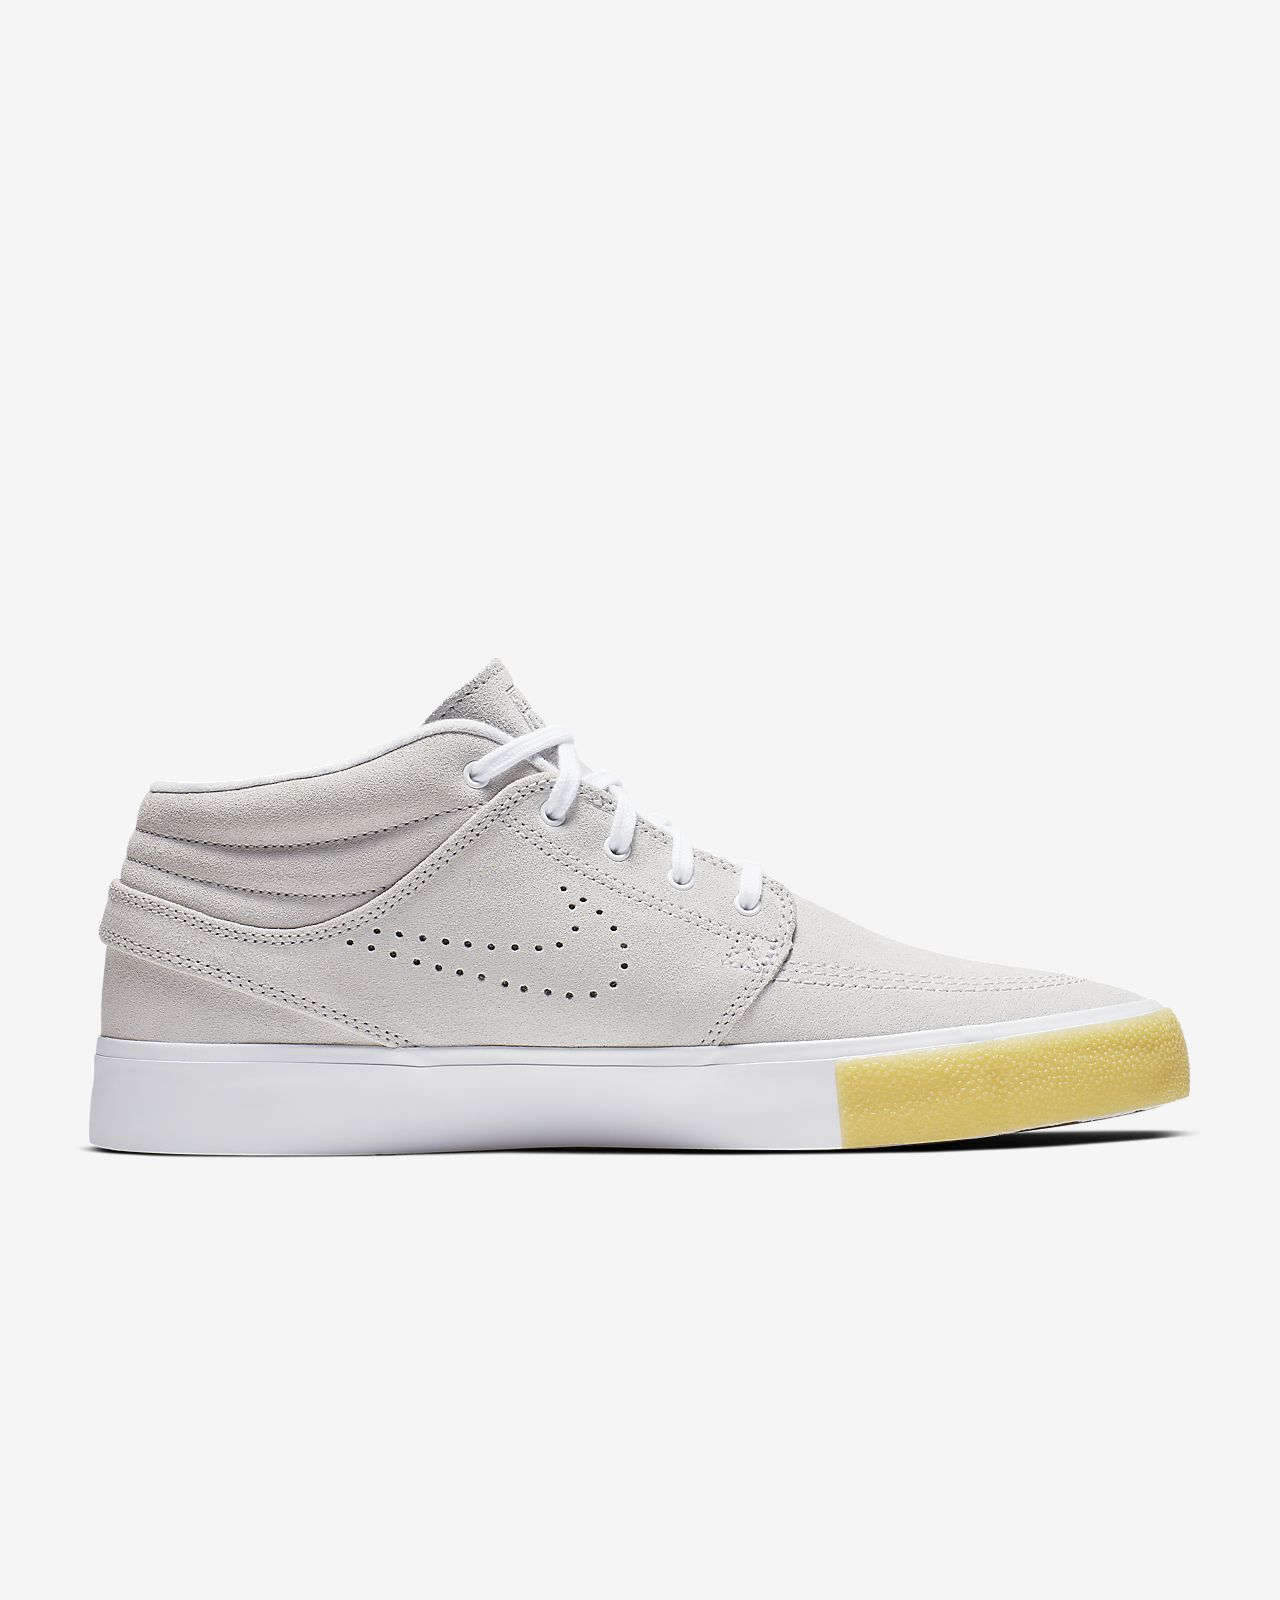 good offer discounts clearance prices Nike SB Zoom Stefan Janoski Mid RM SE Skate Shoe